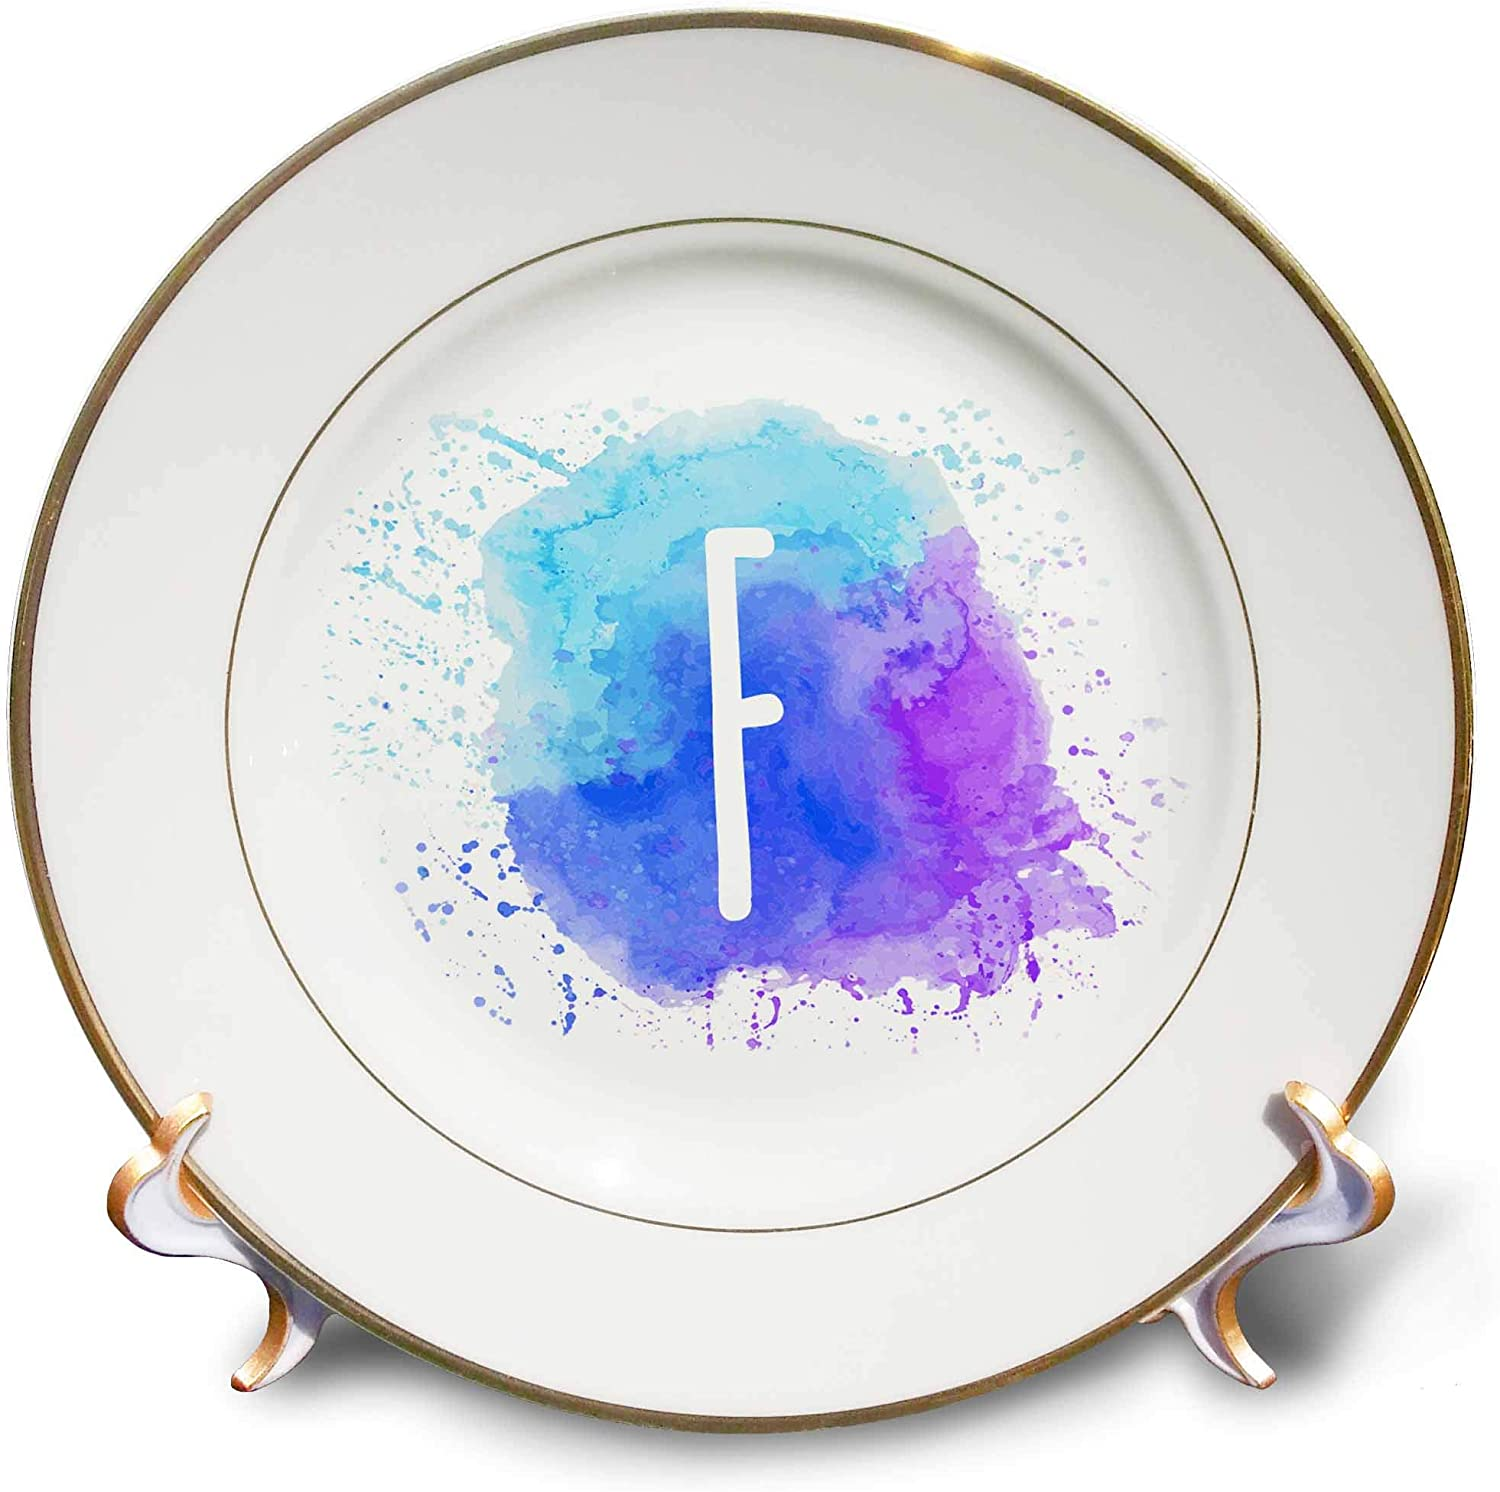 3dRose Stamp City - Typography - Monogram Letter F Inside a Teal, Blue, and Purple Paint Splash. - 8 inch Porcelain Plate (cp_324826_1)